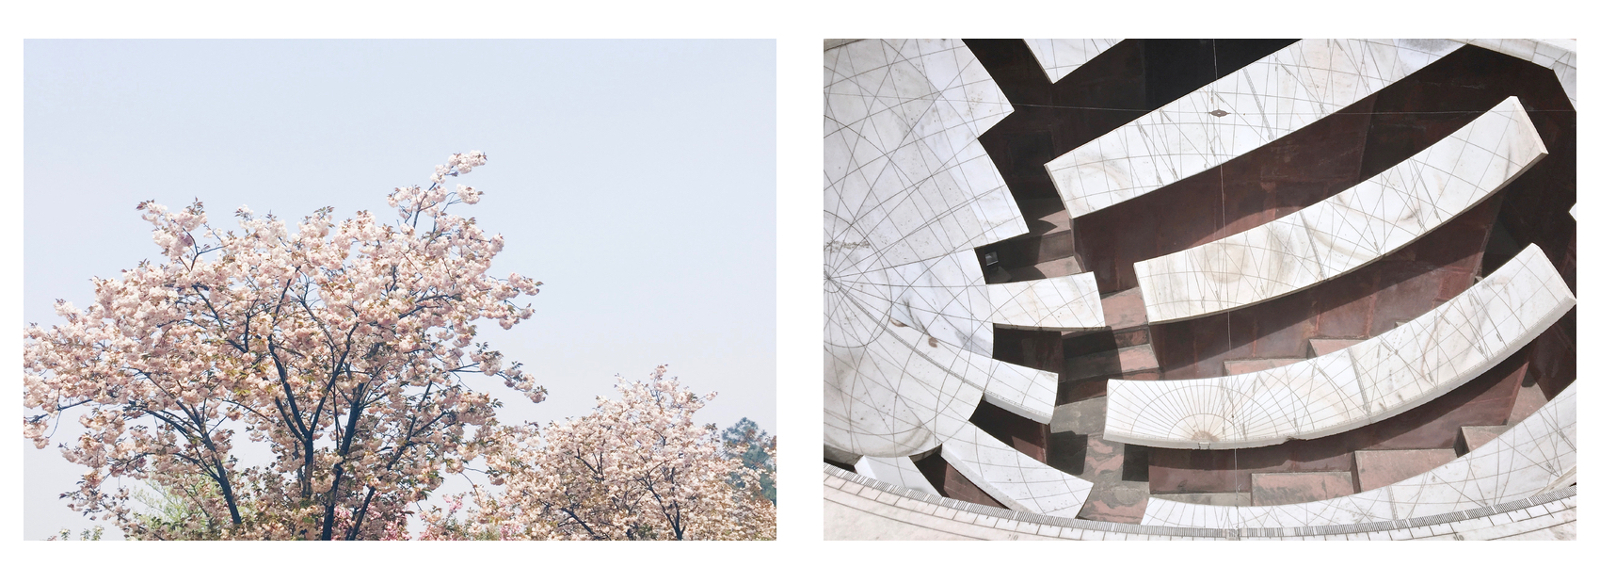 Sakura blosooms in Changsha and a sophisicated ancient clock in Jaipur